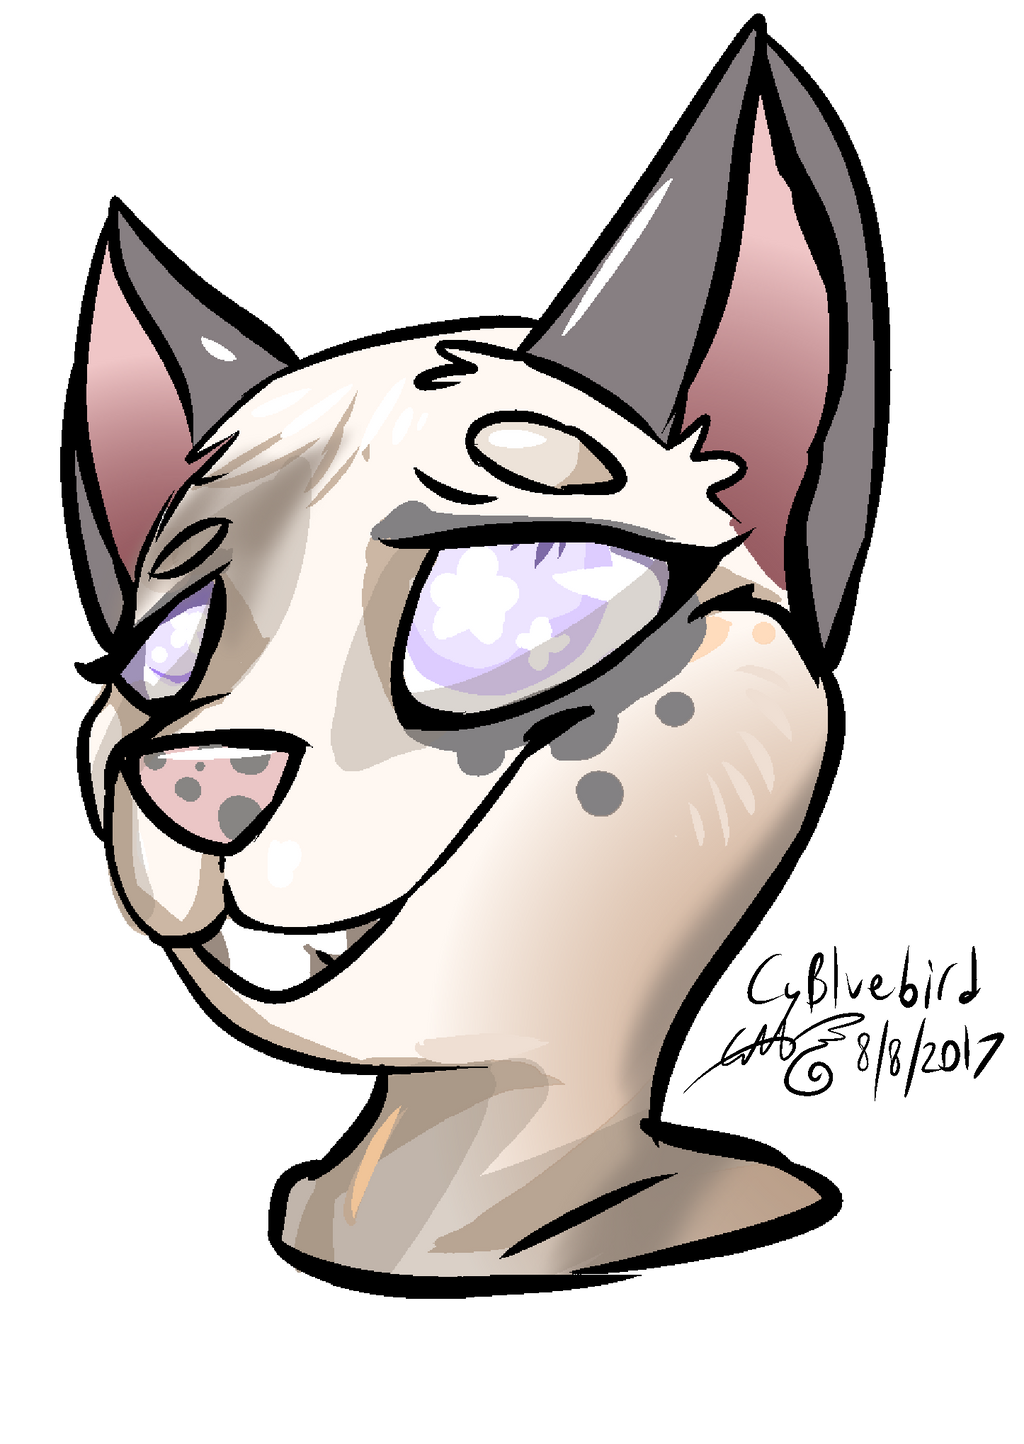 headshot_commission_8_by_cybluebird-dbjc